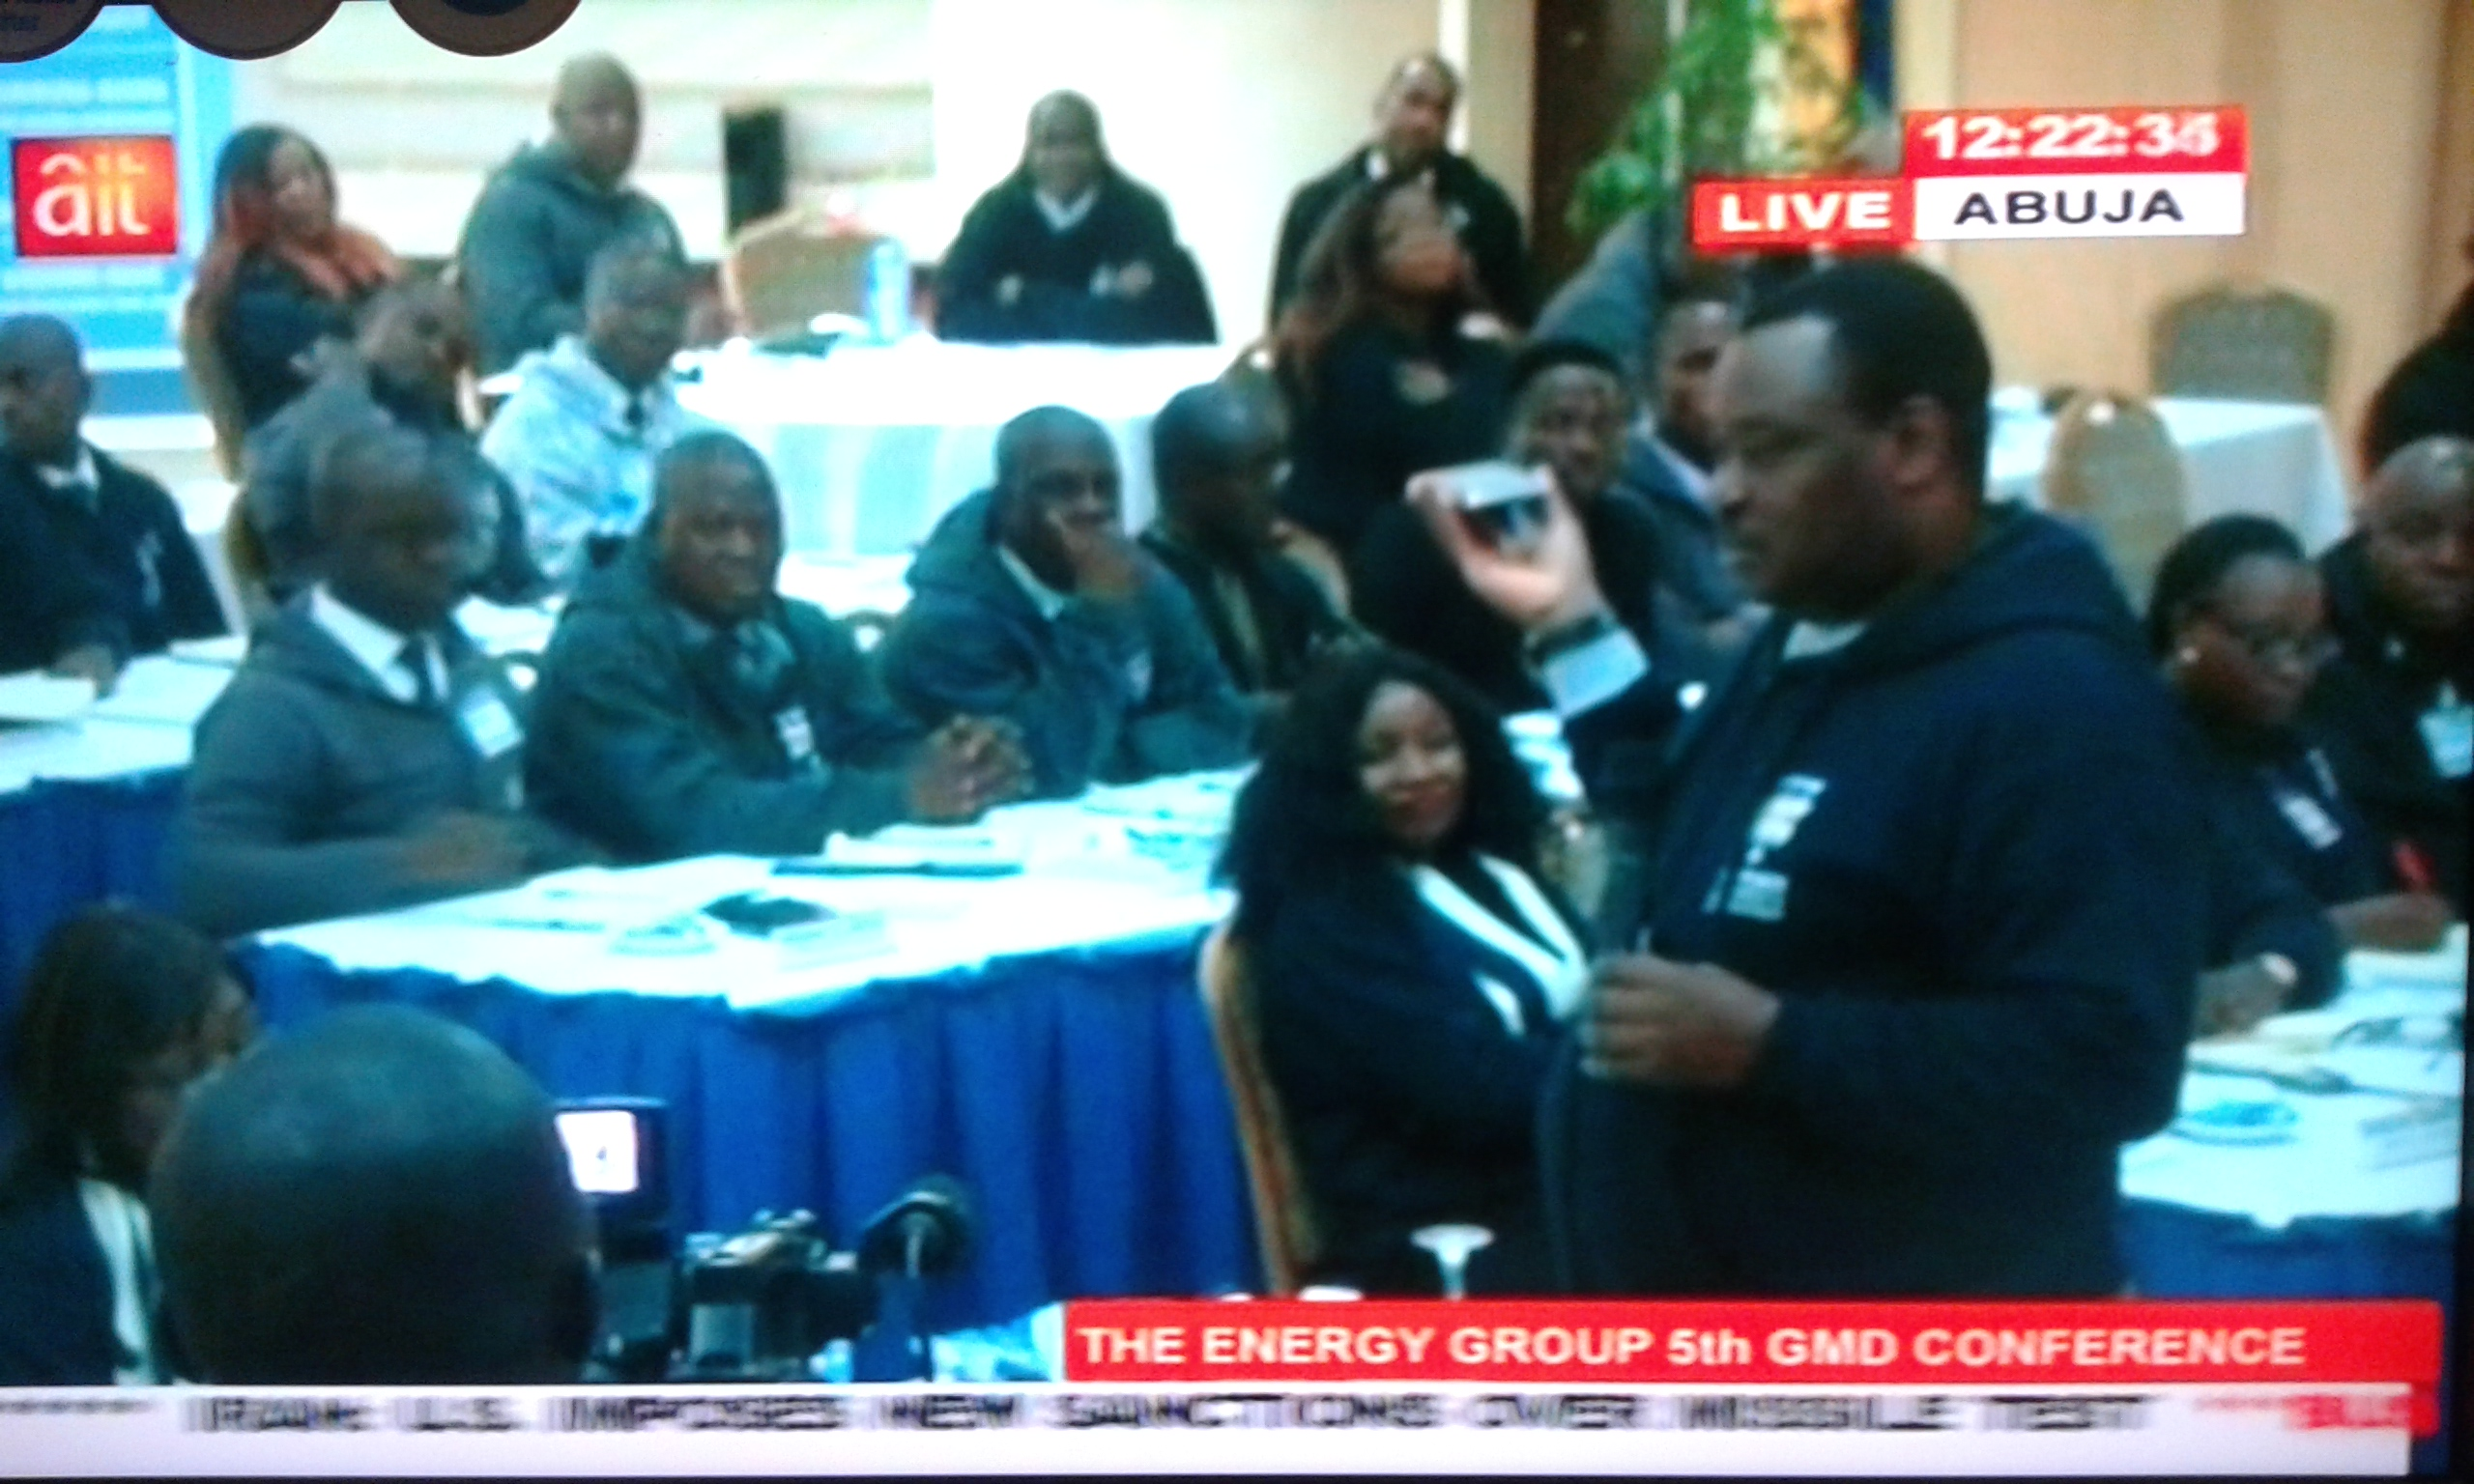 Jimoh Ibrahim live on TV at the conference